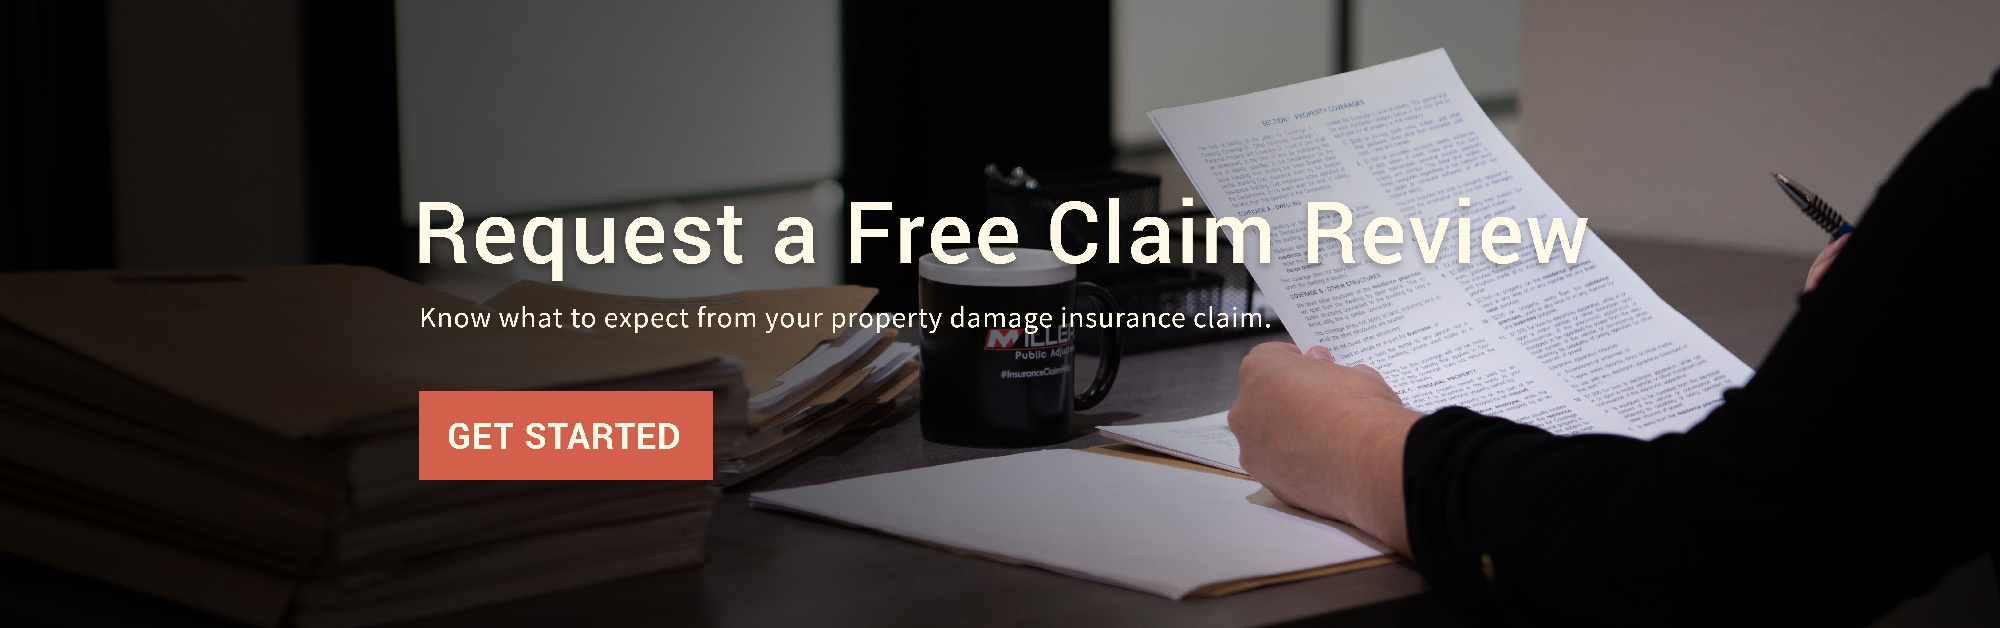 Free Claim Review CTA